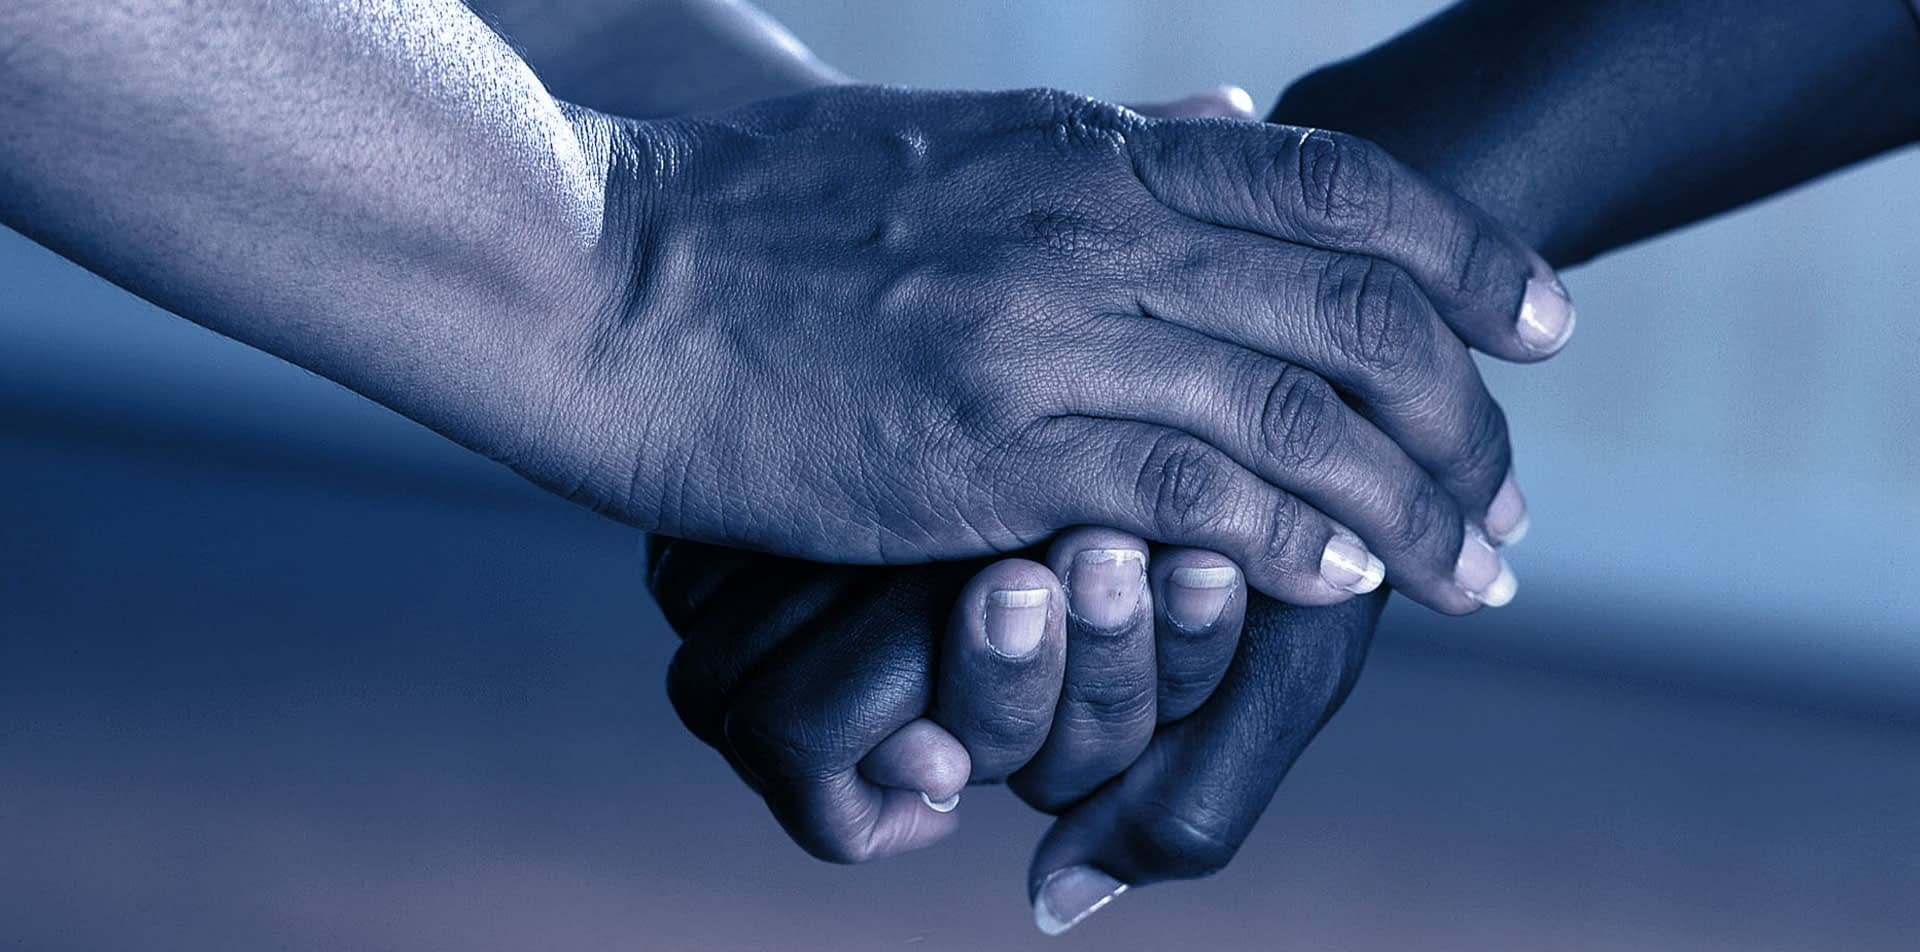 Two people shaking hands in partnership